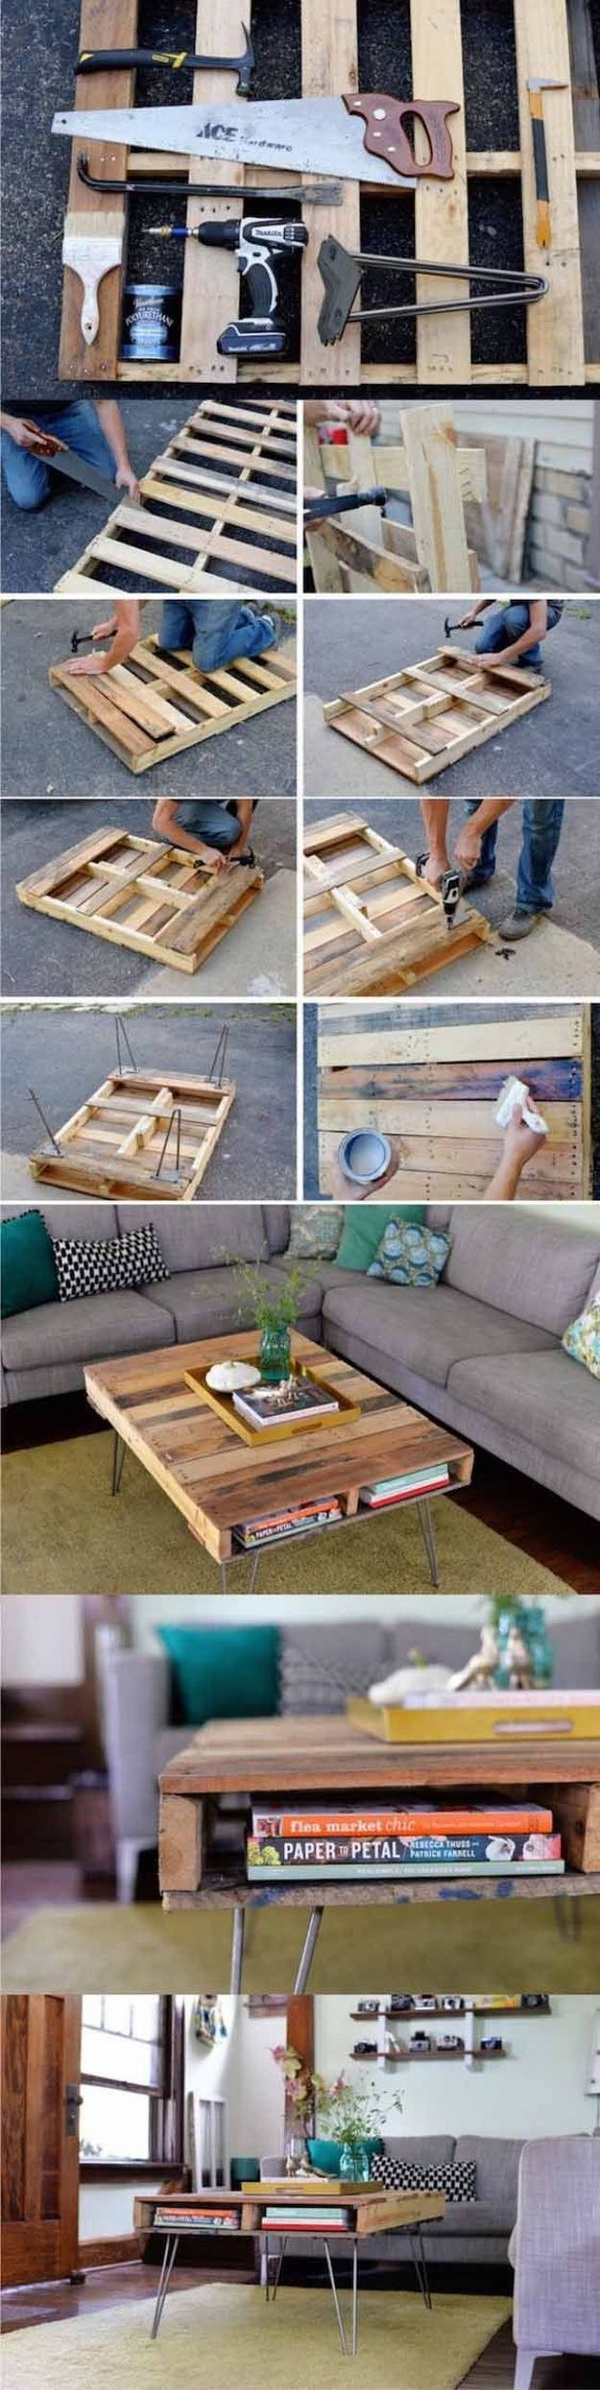 DIY Pallet Coffee Table. Pallets come in various sizes and qualities. Look for the best pallets and recycle them into this practical coffee table for your living space! It is elatively easy to make with instuctions.